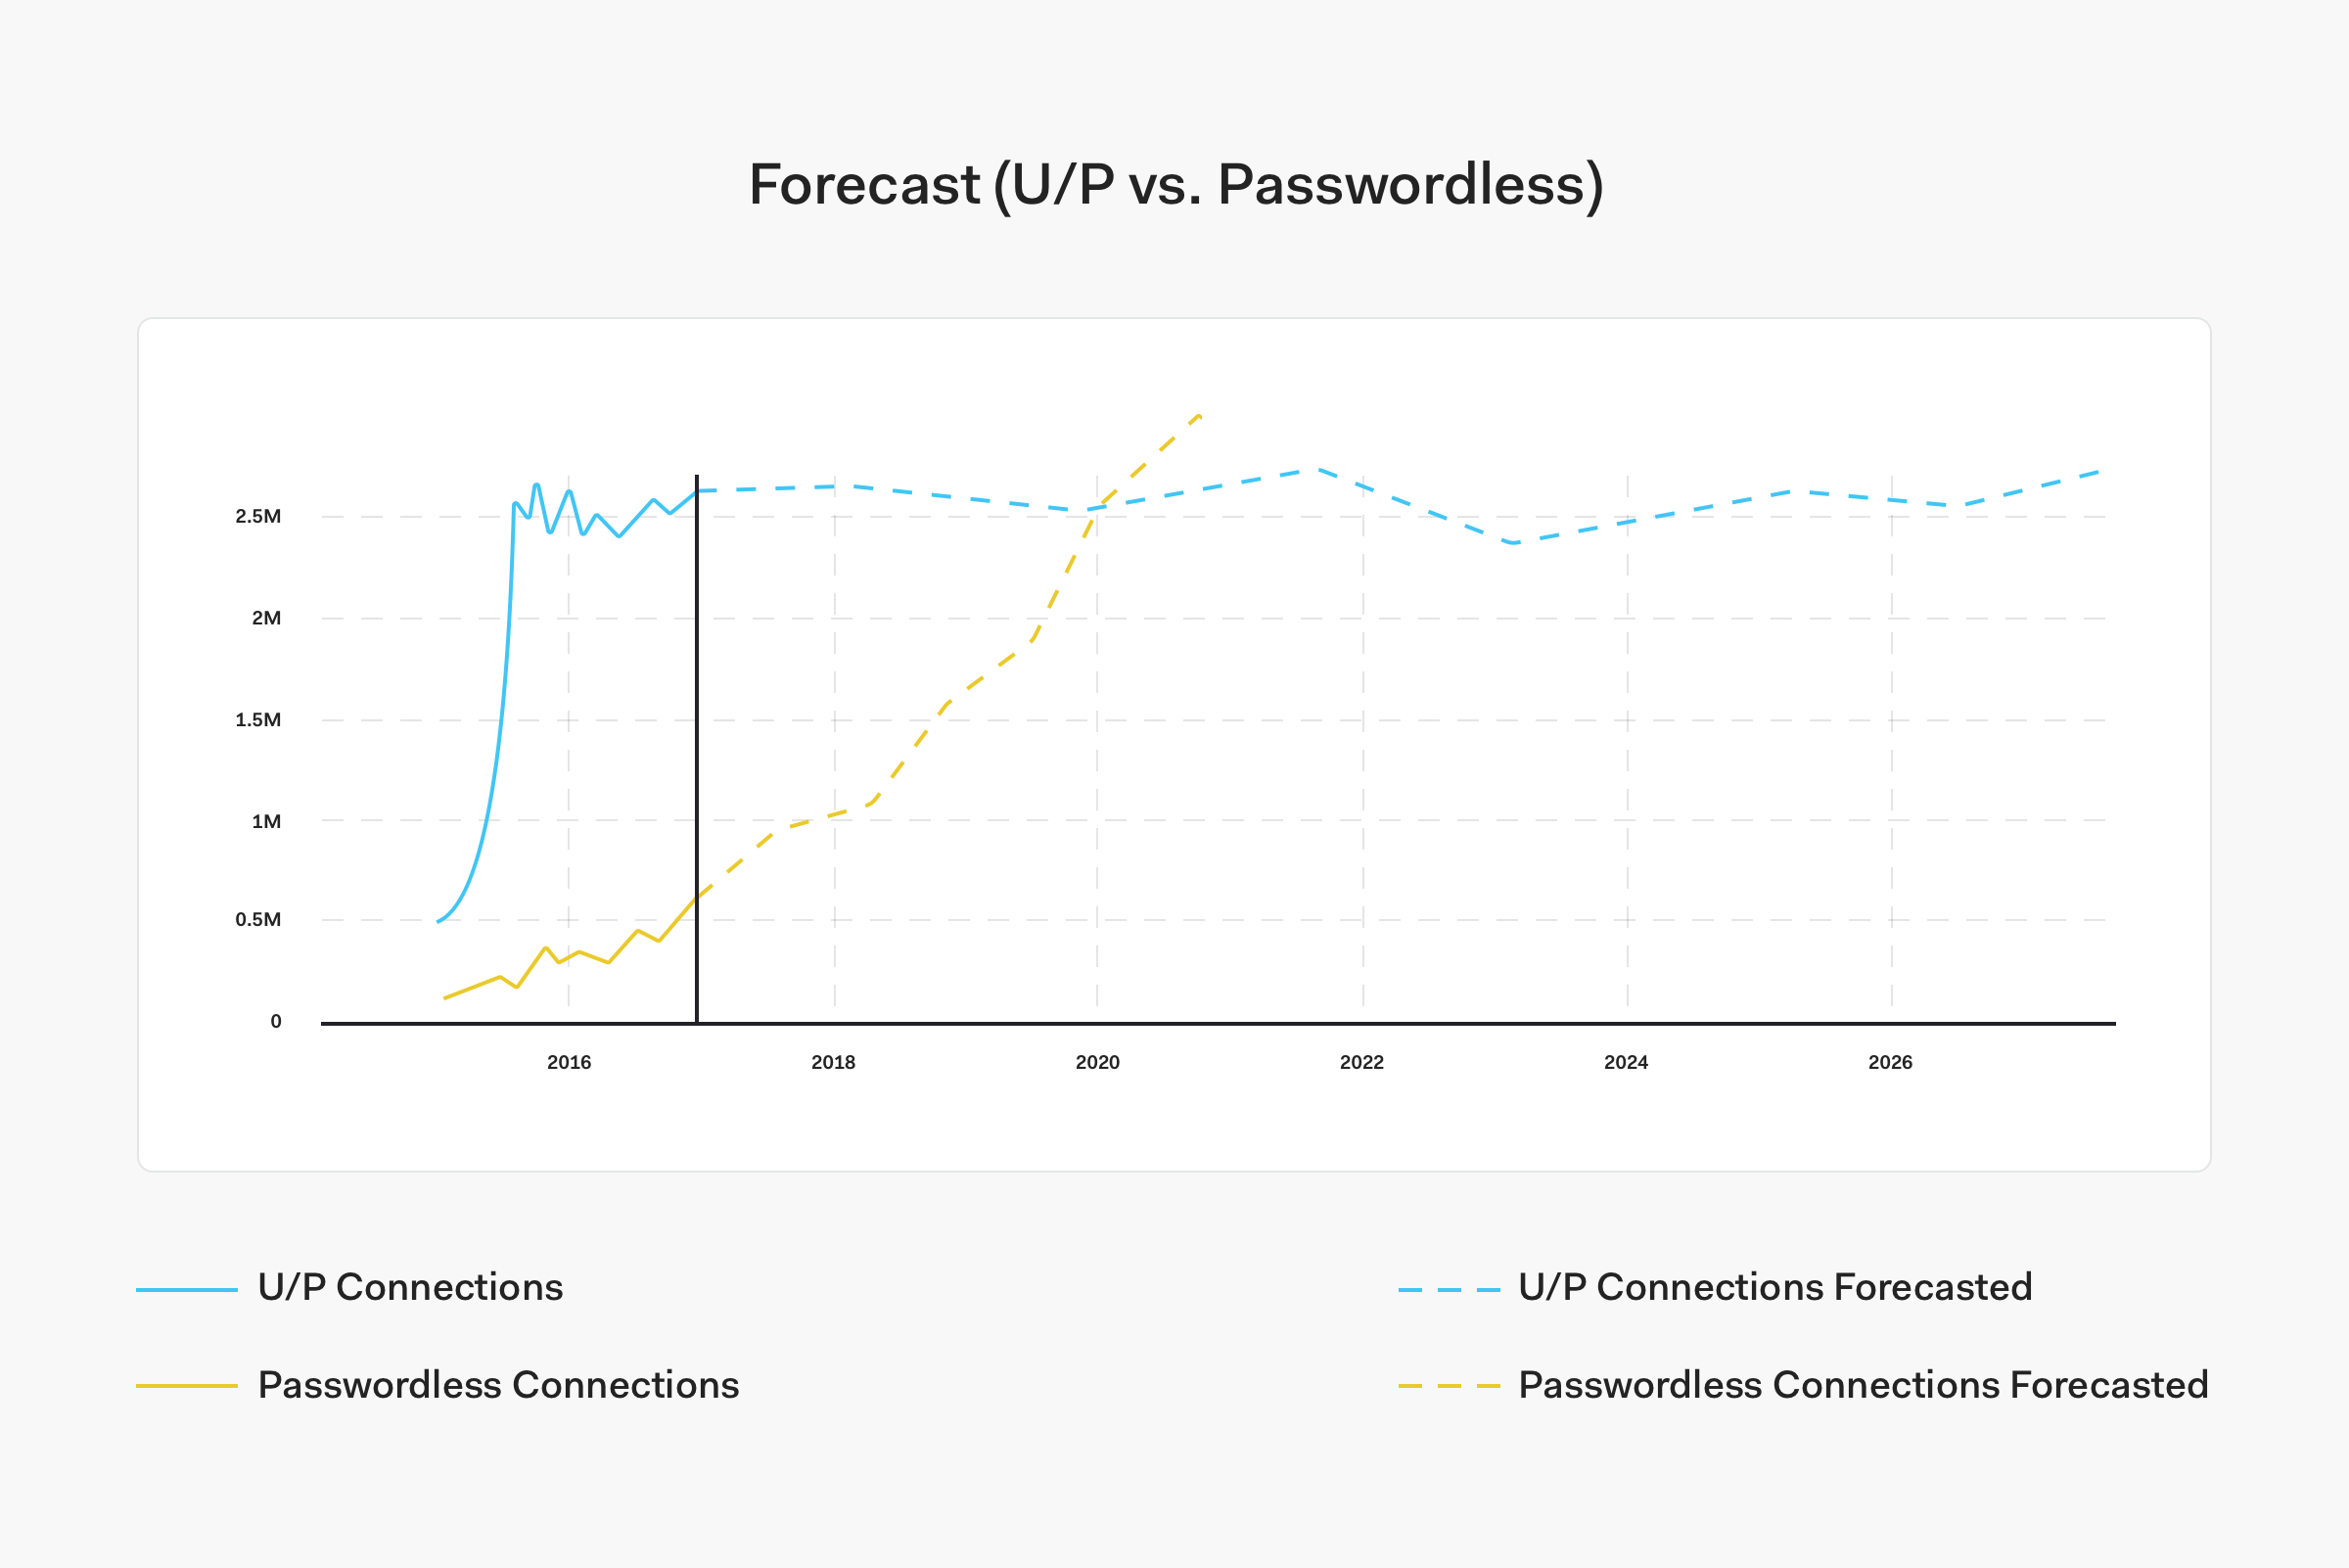 Forecast (U/P vs Passwordless